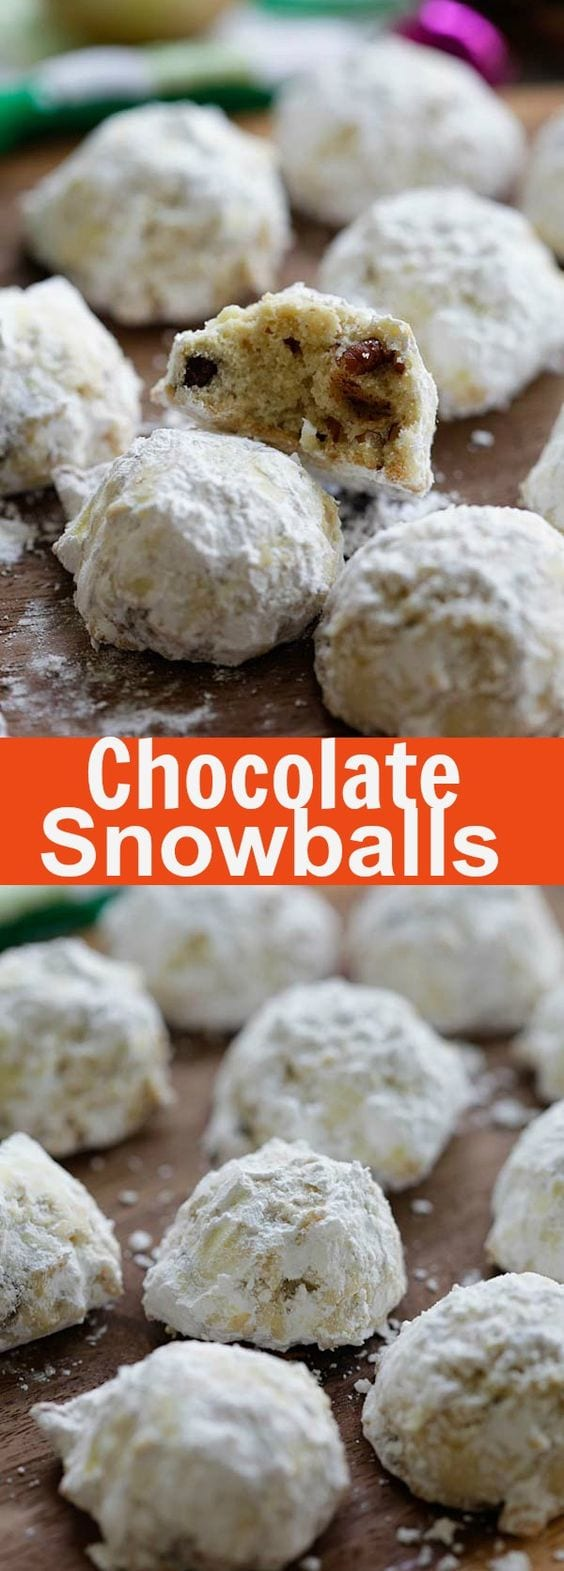 Chocolate Snowballs – Sugar-covered chocolate chips and pecan cookies. Buttery, crunchy, sweet, the best cookies for the season | rasamalaysia.com